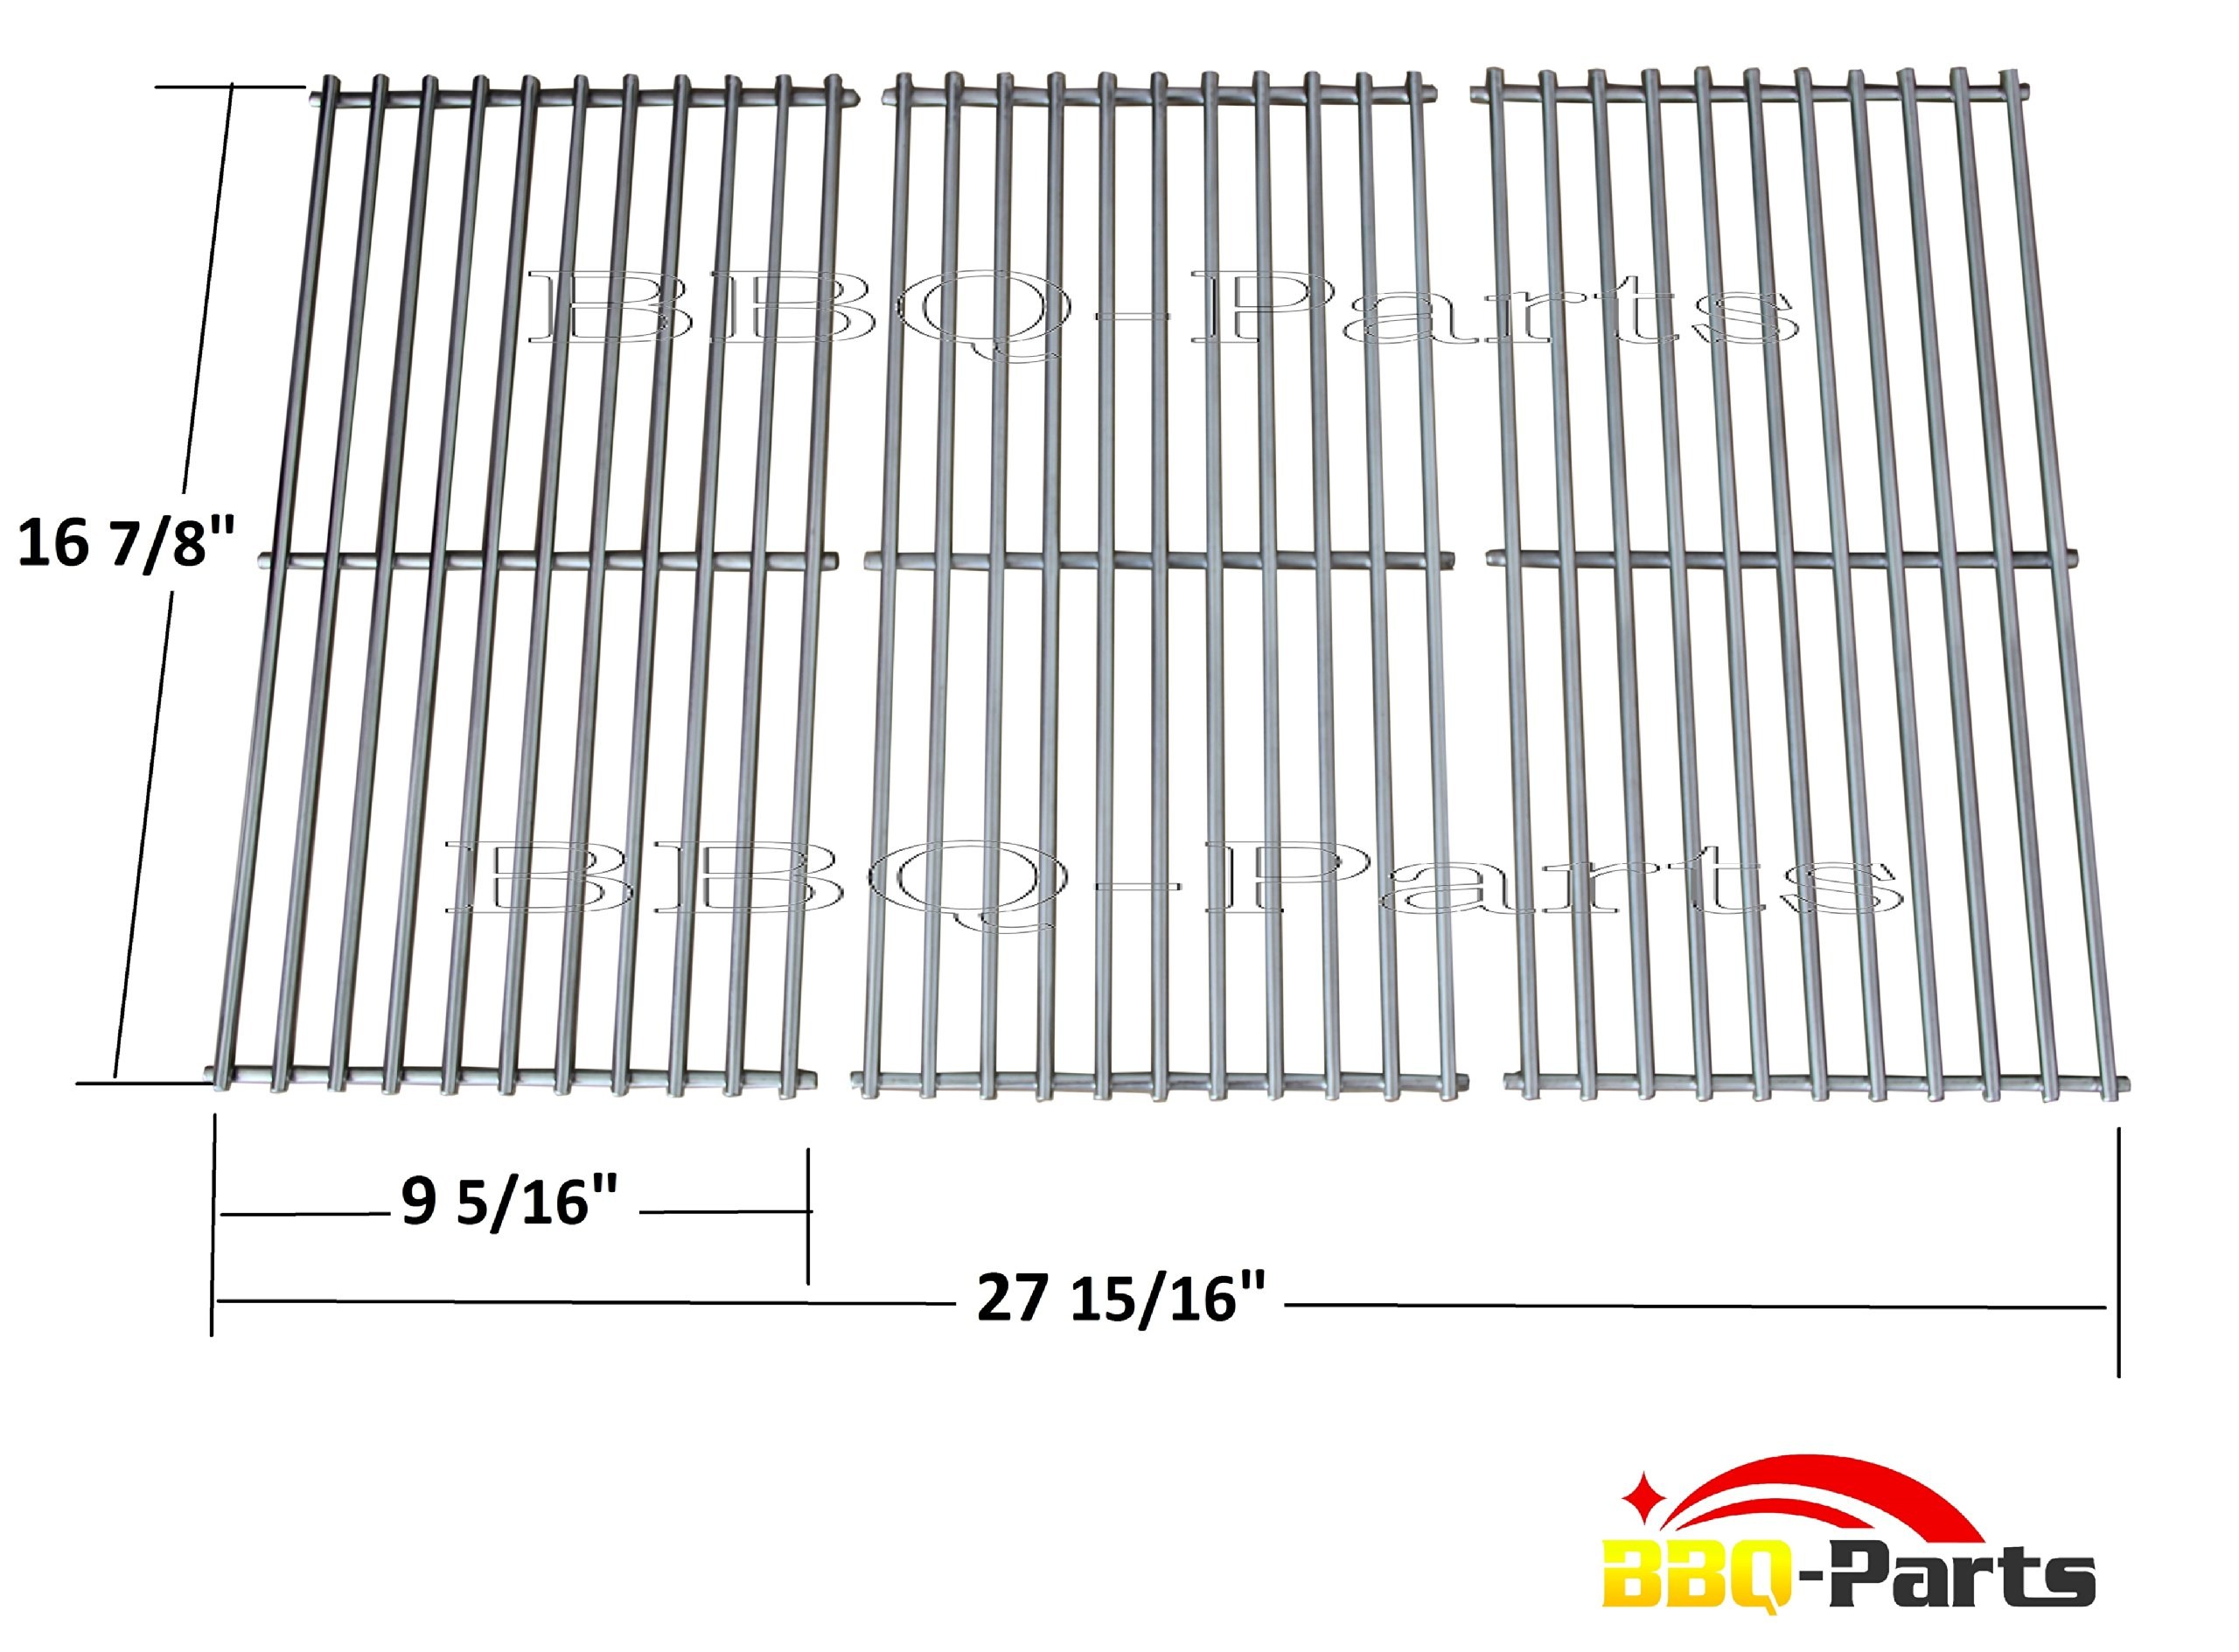 Sch763 Ss Cooking Grid Replacement For Charbroil Kenmore And Other Gas Grills